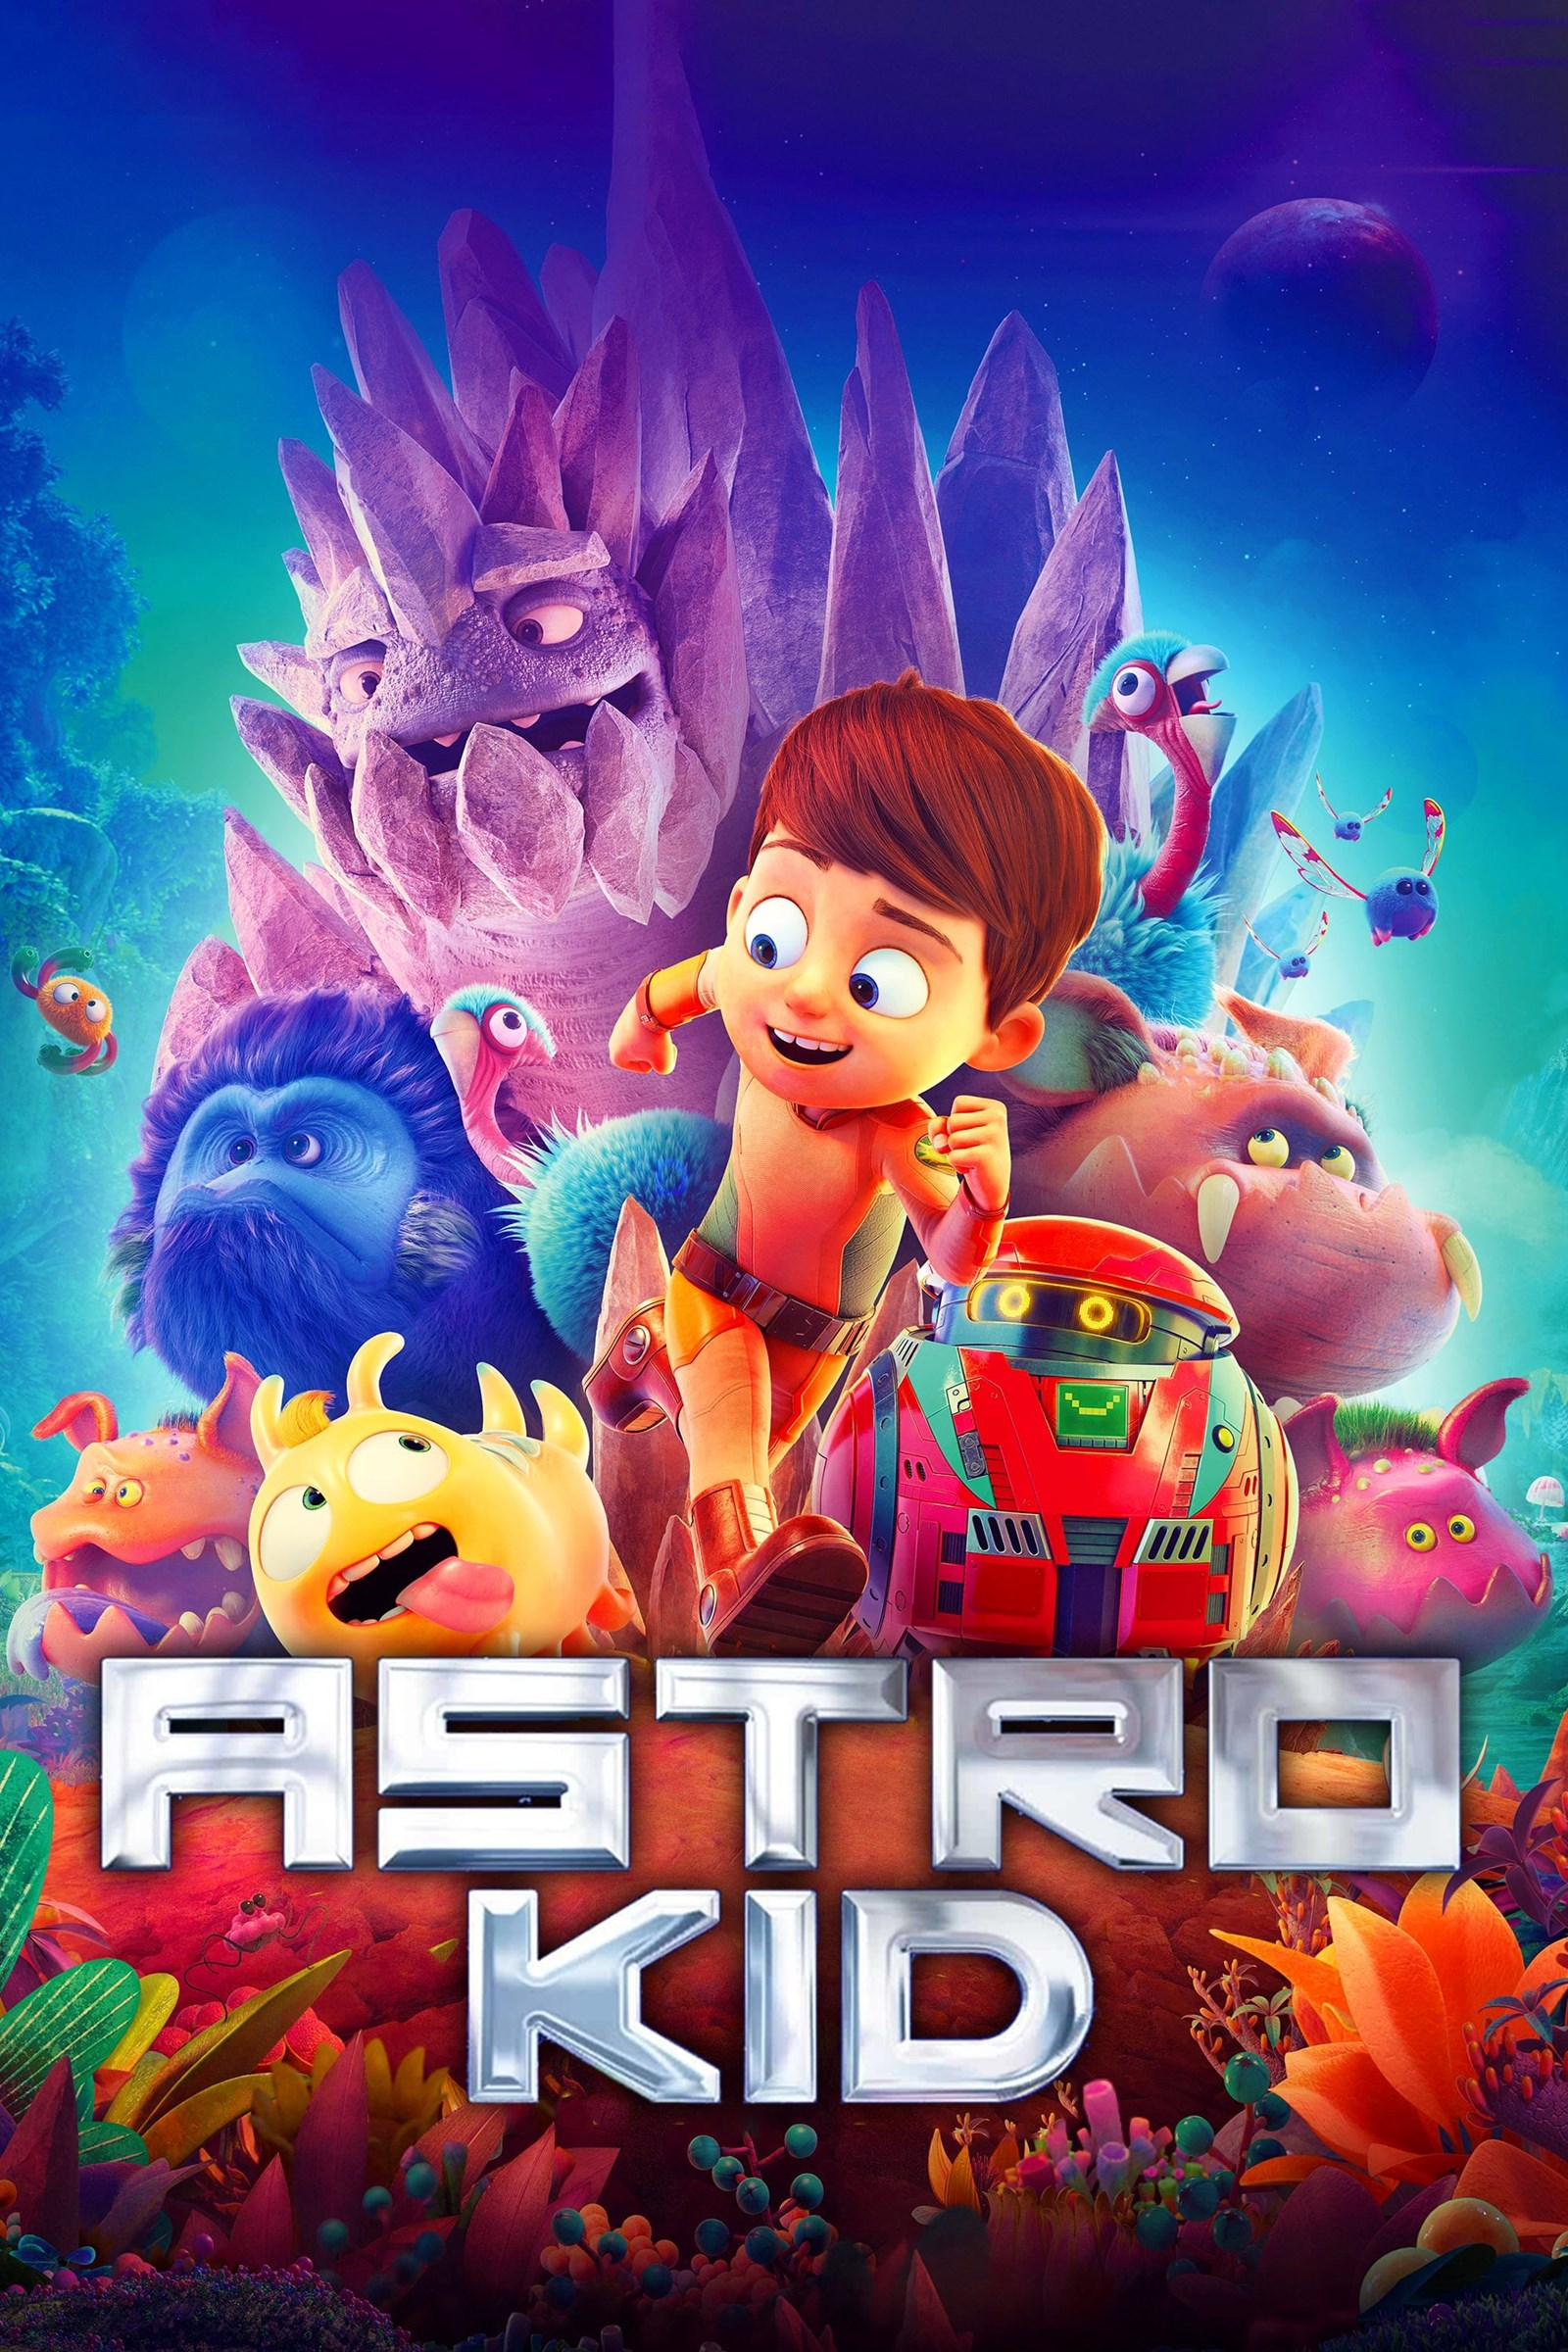 Astro Kid (2019) English Blu-Ray - 480P | 720P - x264 - 300MB | 800MB - Download & Watch Online With Subtitle Movie Poster - mlsbd